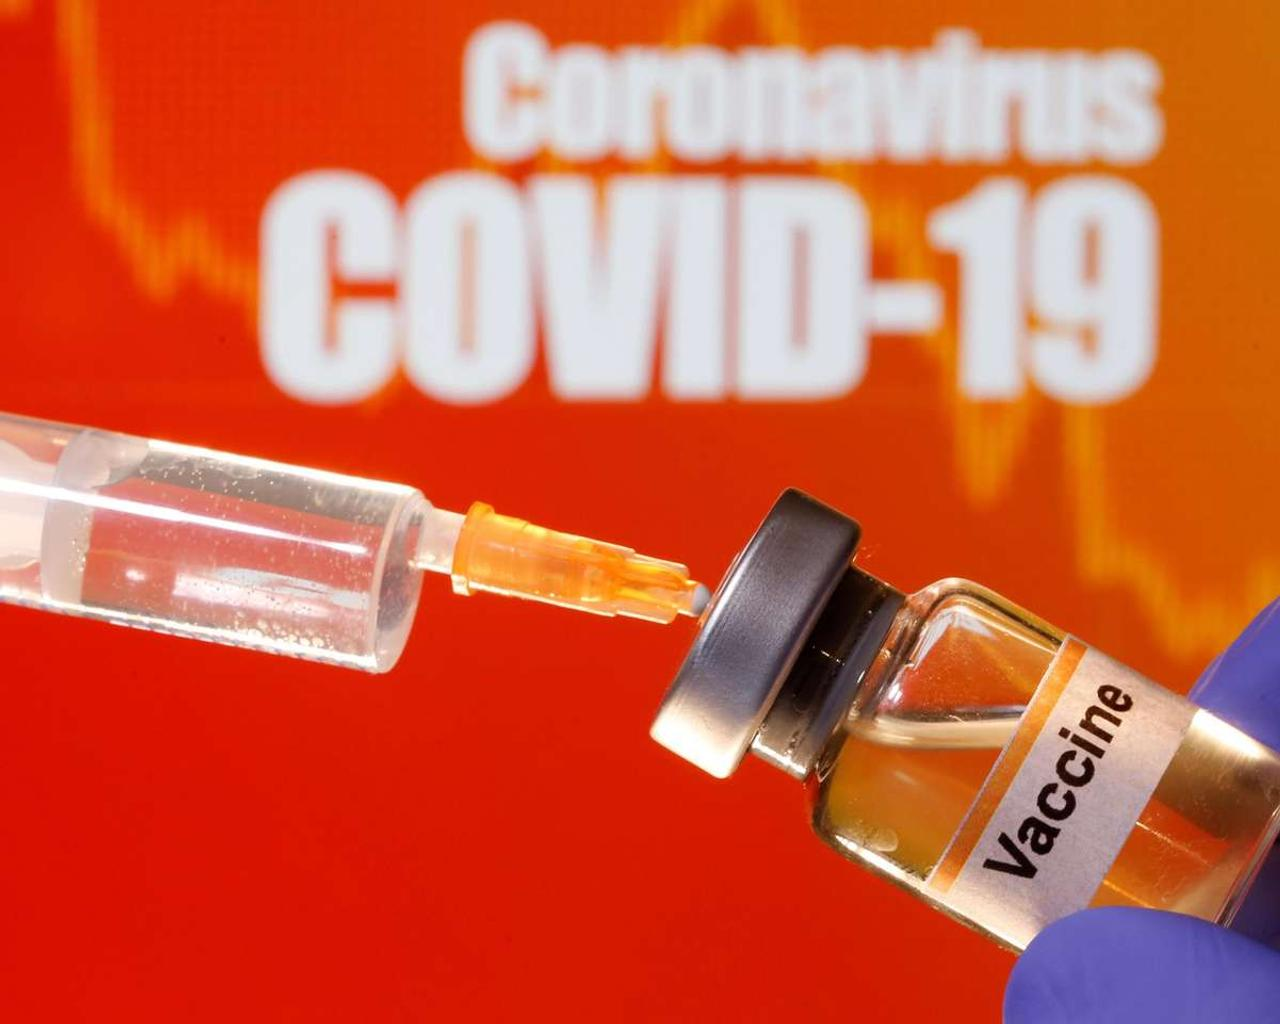 Vaccine requirements are spreading through the United States, raising concerns about overreach.